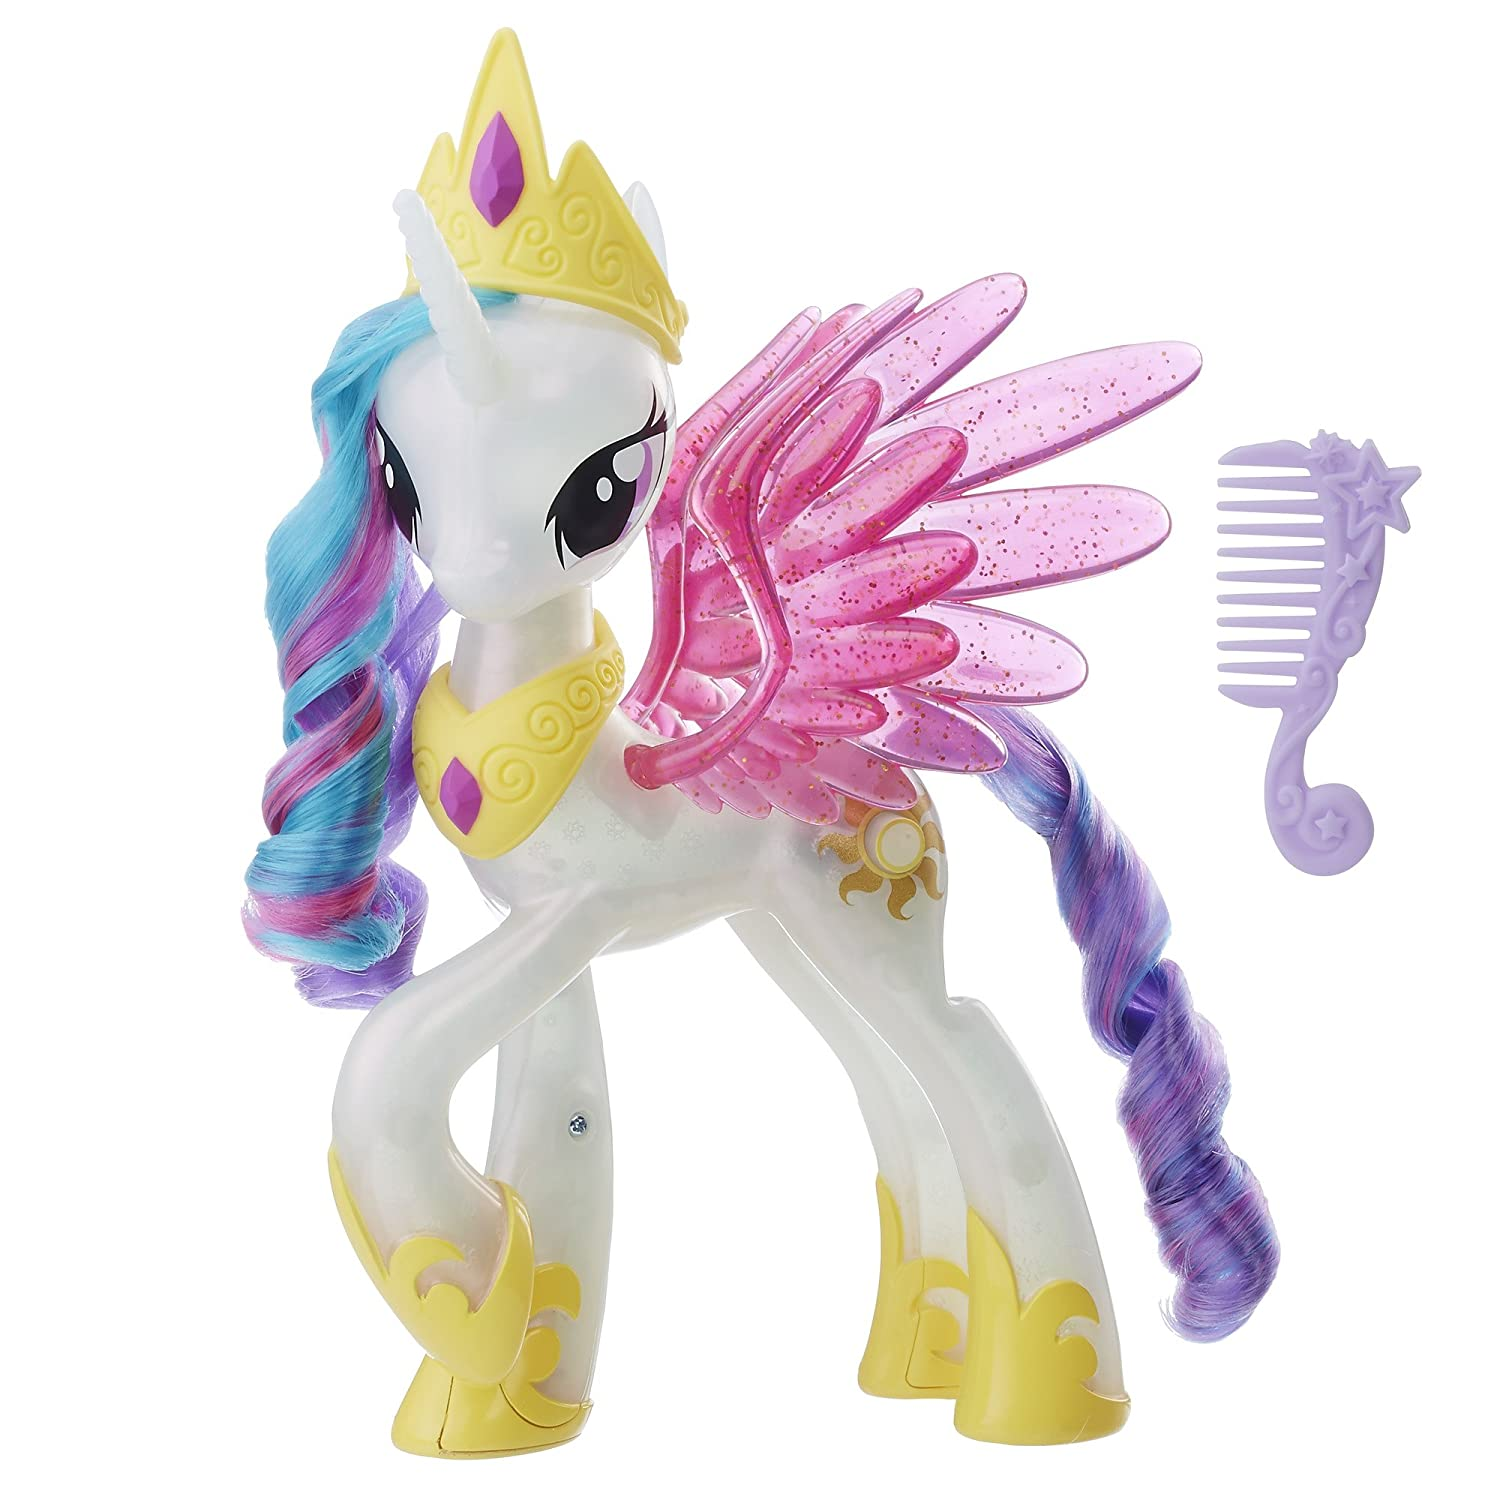 Top 11 Best My Little Pony Toys Reviews in 2019 10